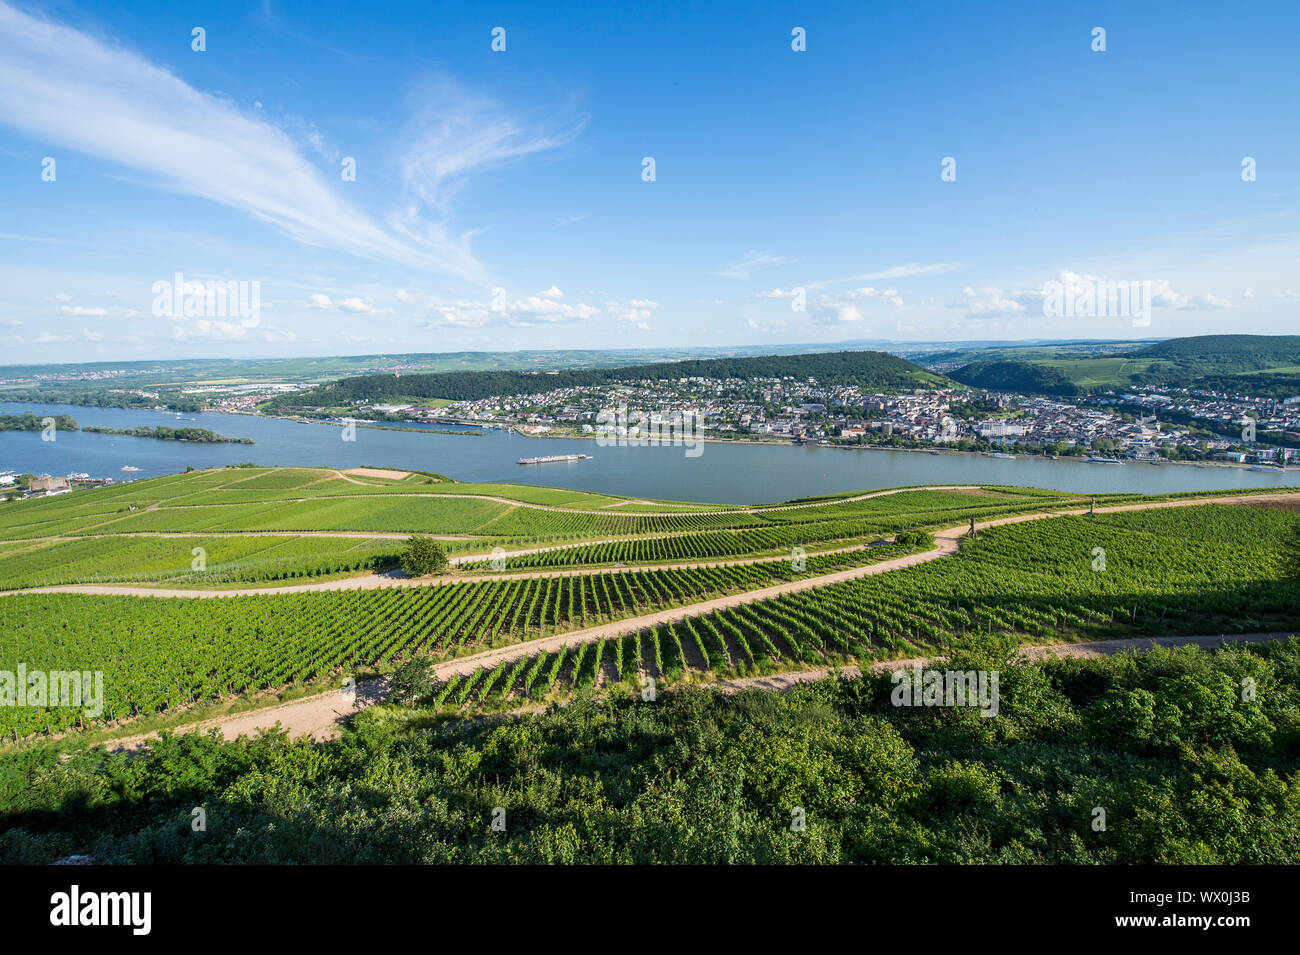 View over the River Rhine from the Niederwalddenkmal monument, UNESCO World Heritage Site, Middle Rhine valley, Germany, Europe Stock Photo